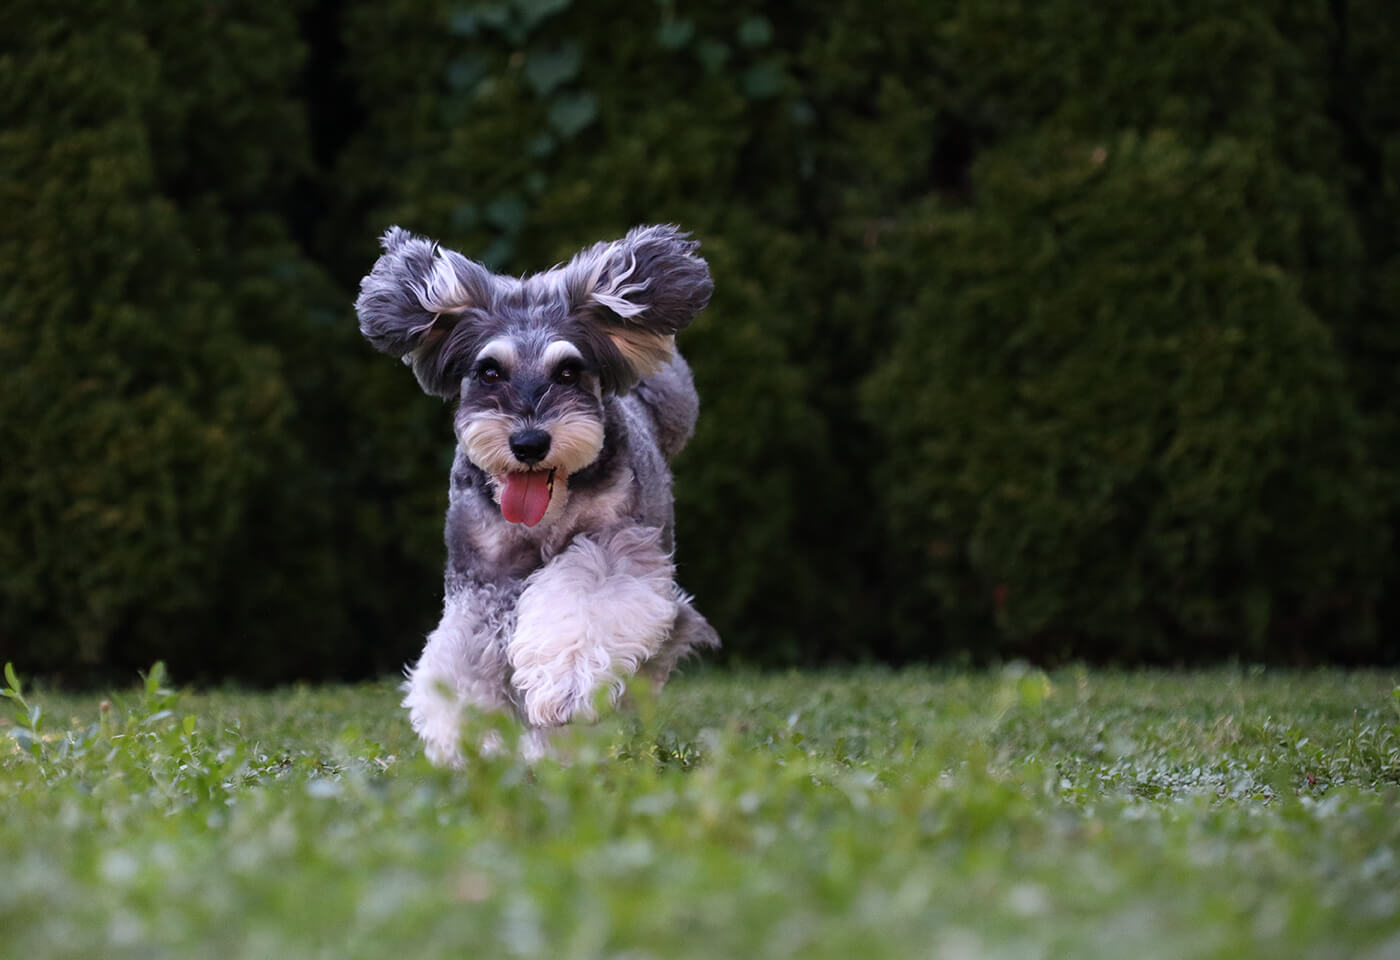 Image of a running dog taken using the EOS M50 Mark II mirrorless camera